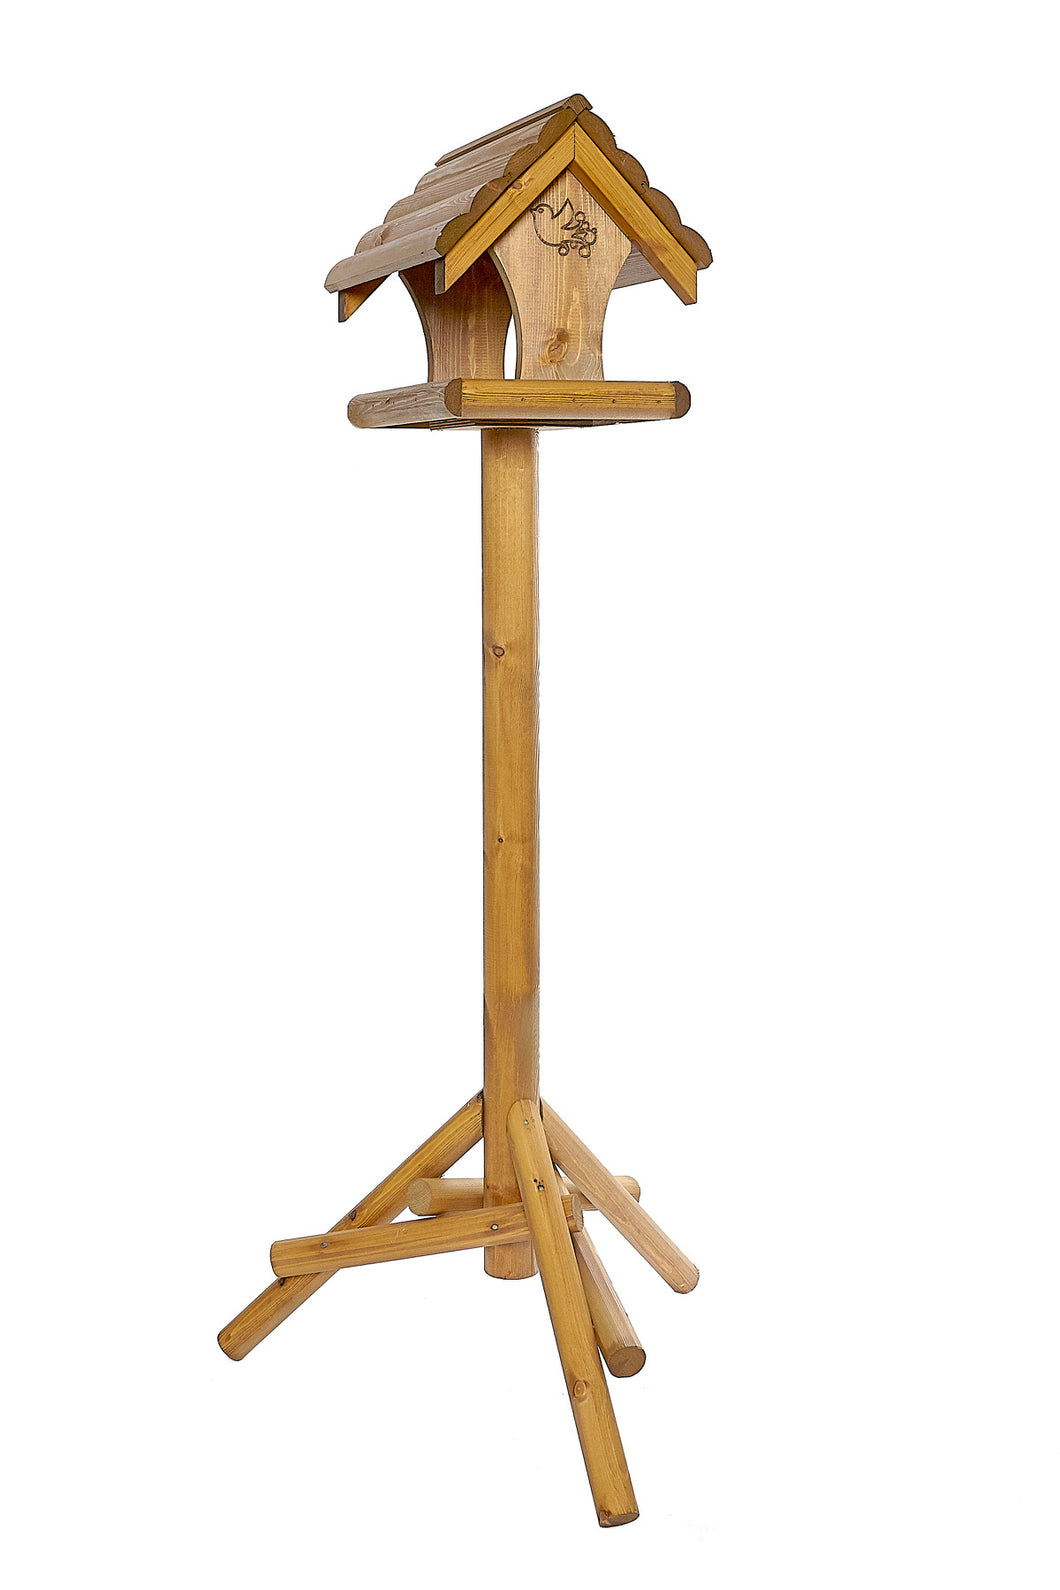 Warbler - Wooden Roof Bird Table